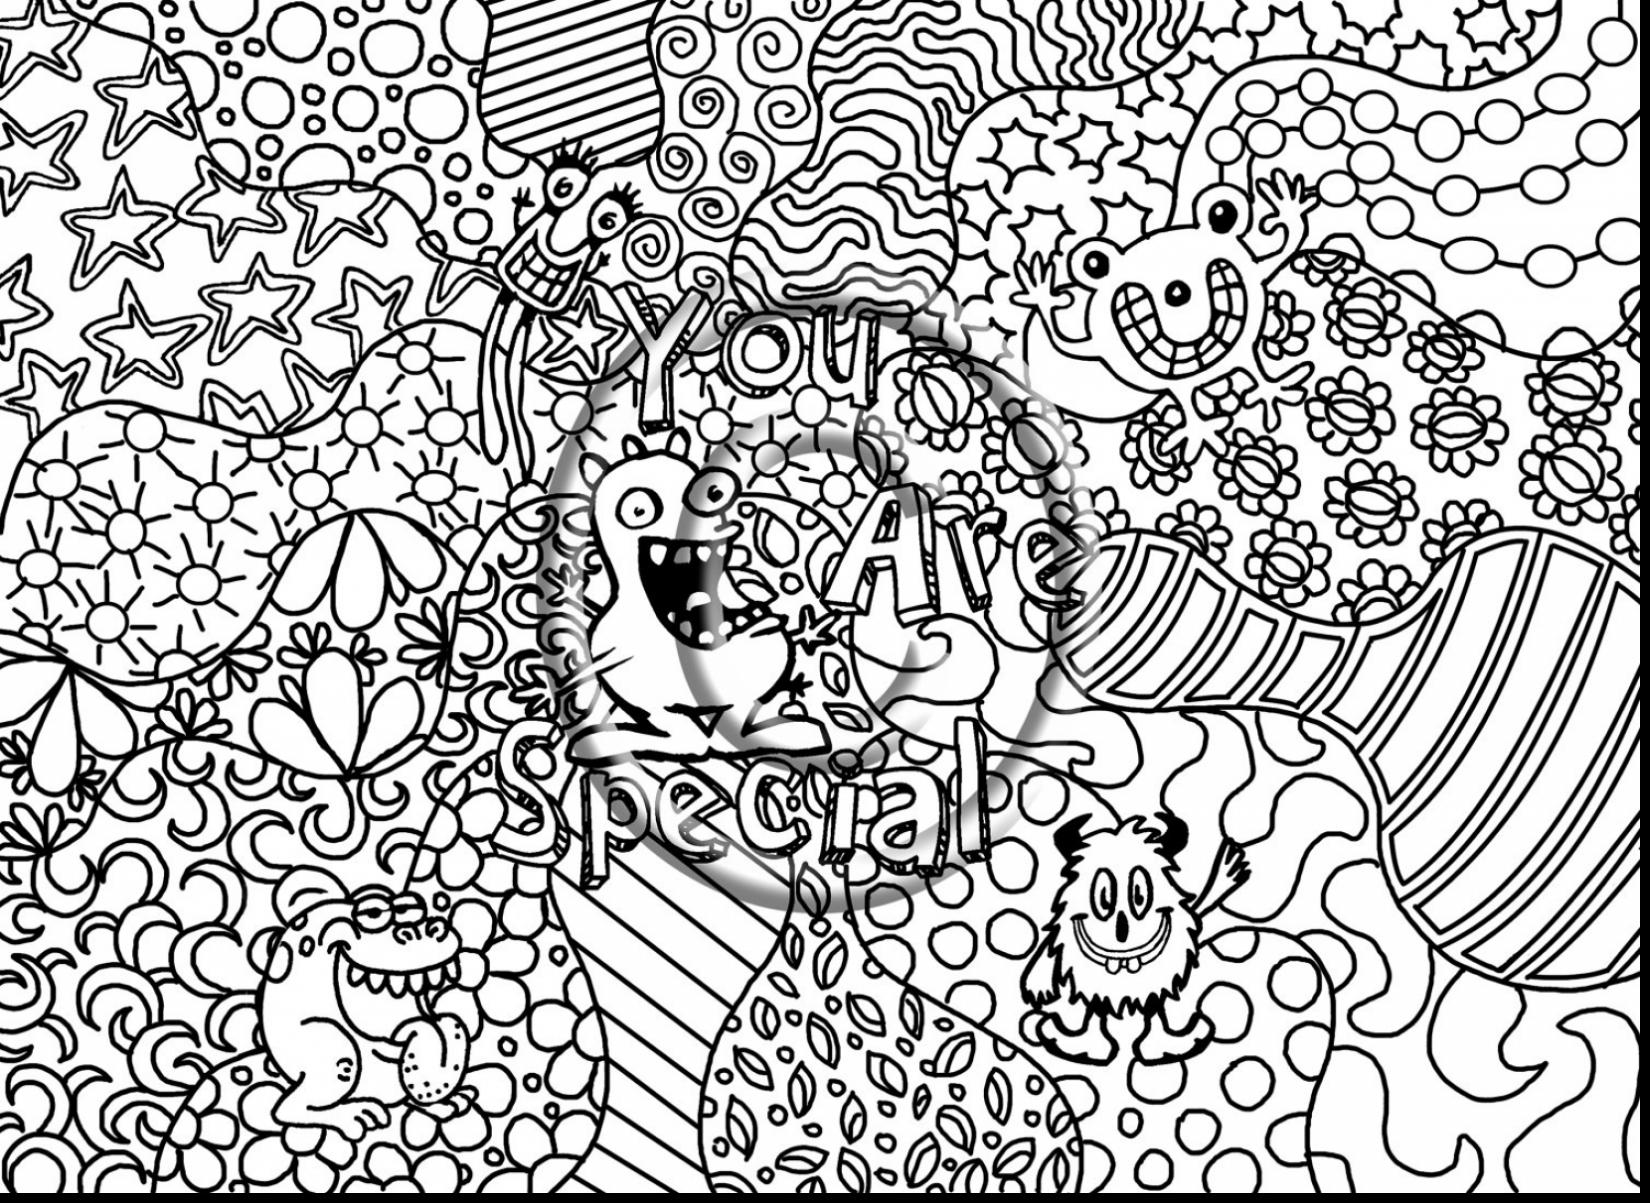 trippy coloring page trippy coloring pages at getdrawings free download page trippy coloring